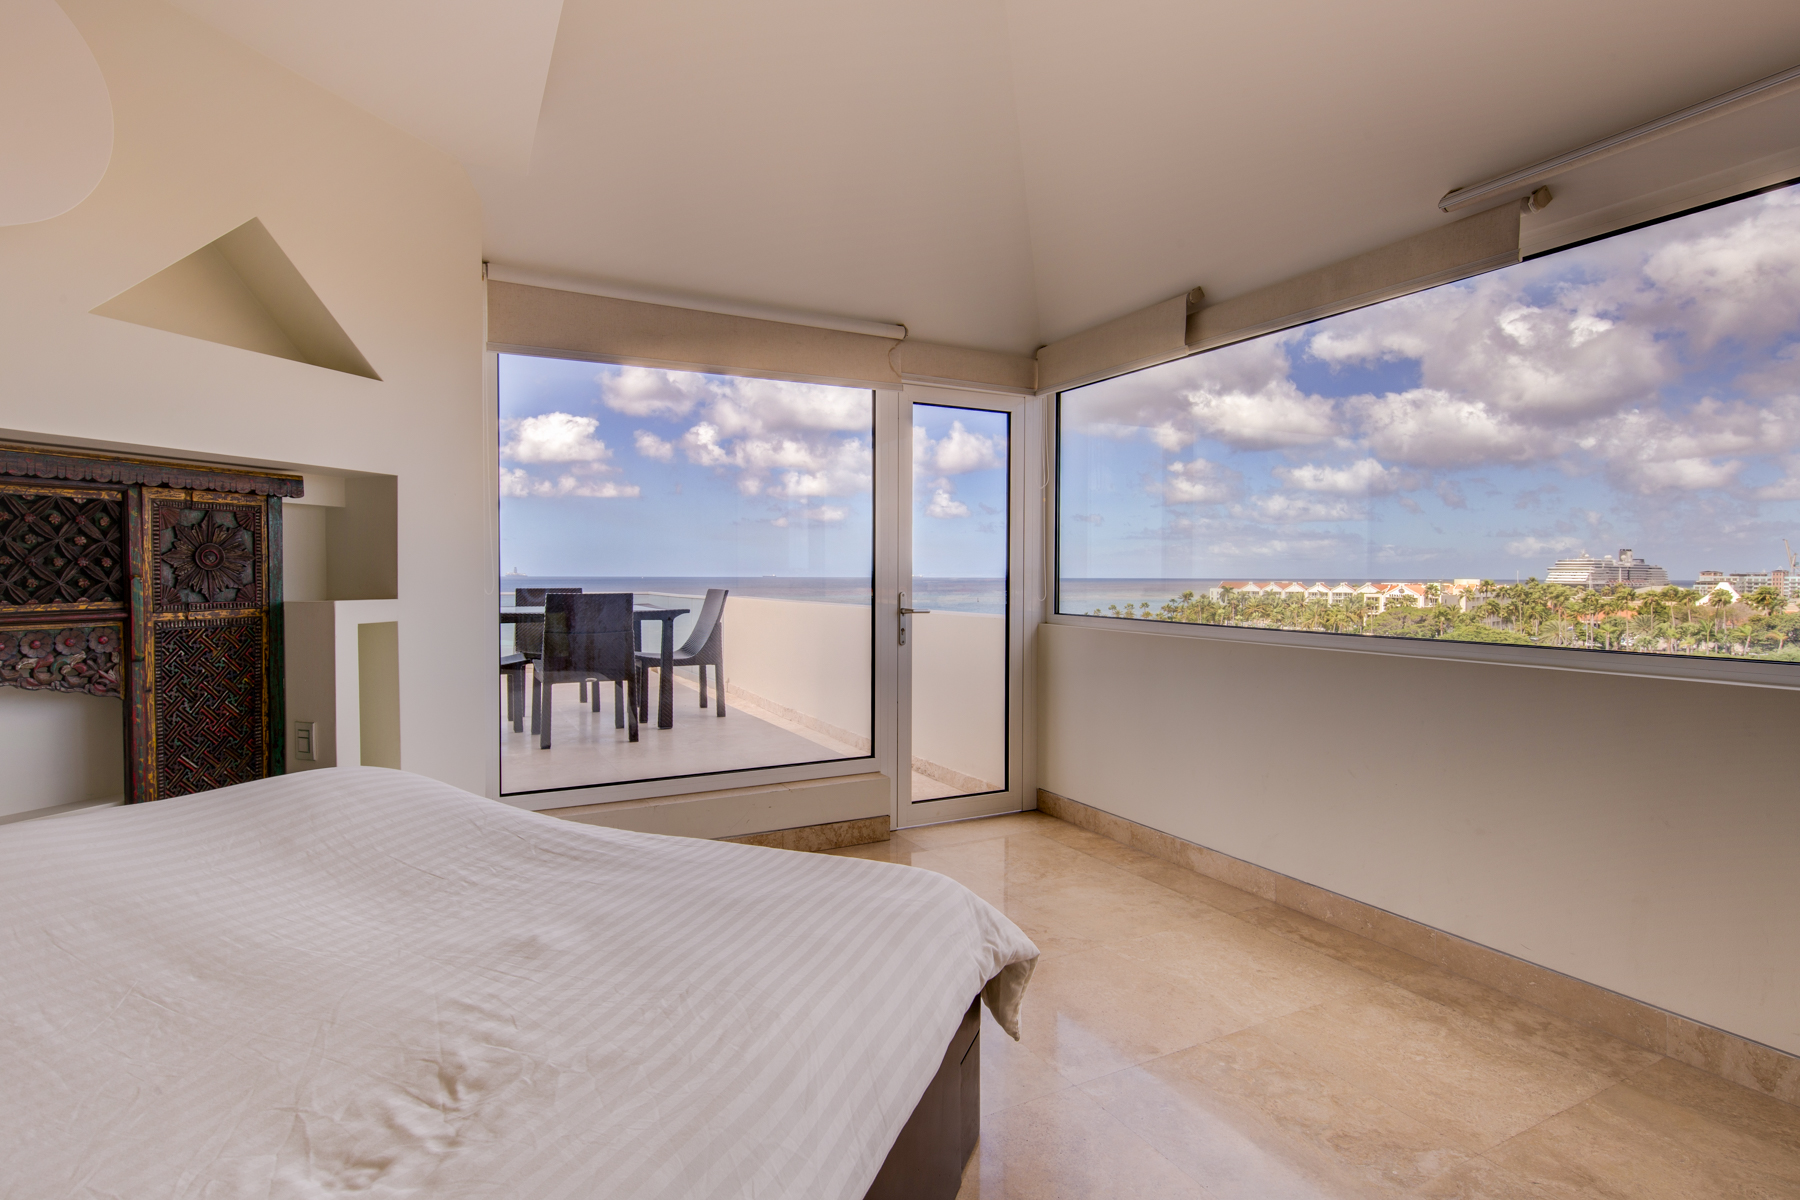 Additional photo for property listing at The Coral Pyramid Penthouse in Aruba Oranjestad, Aruba Aruba